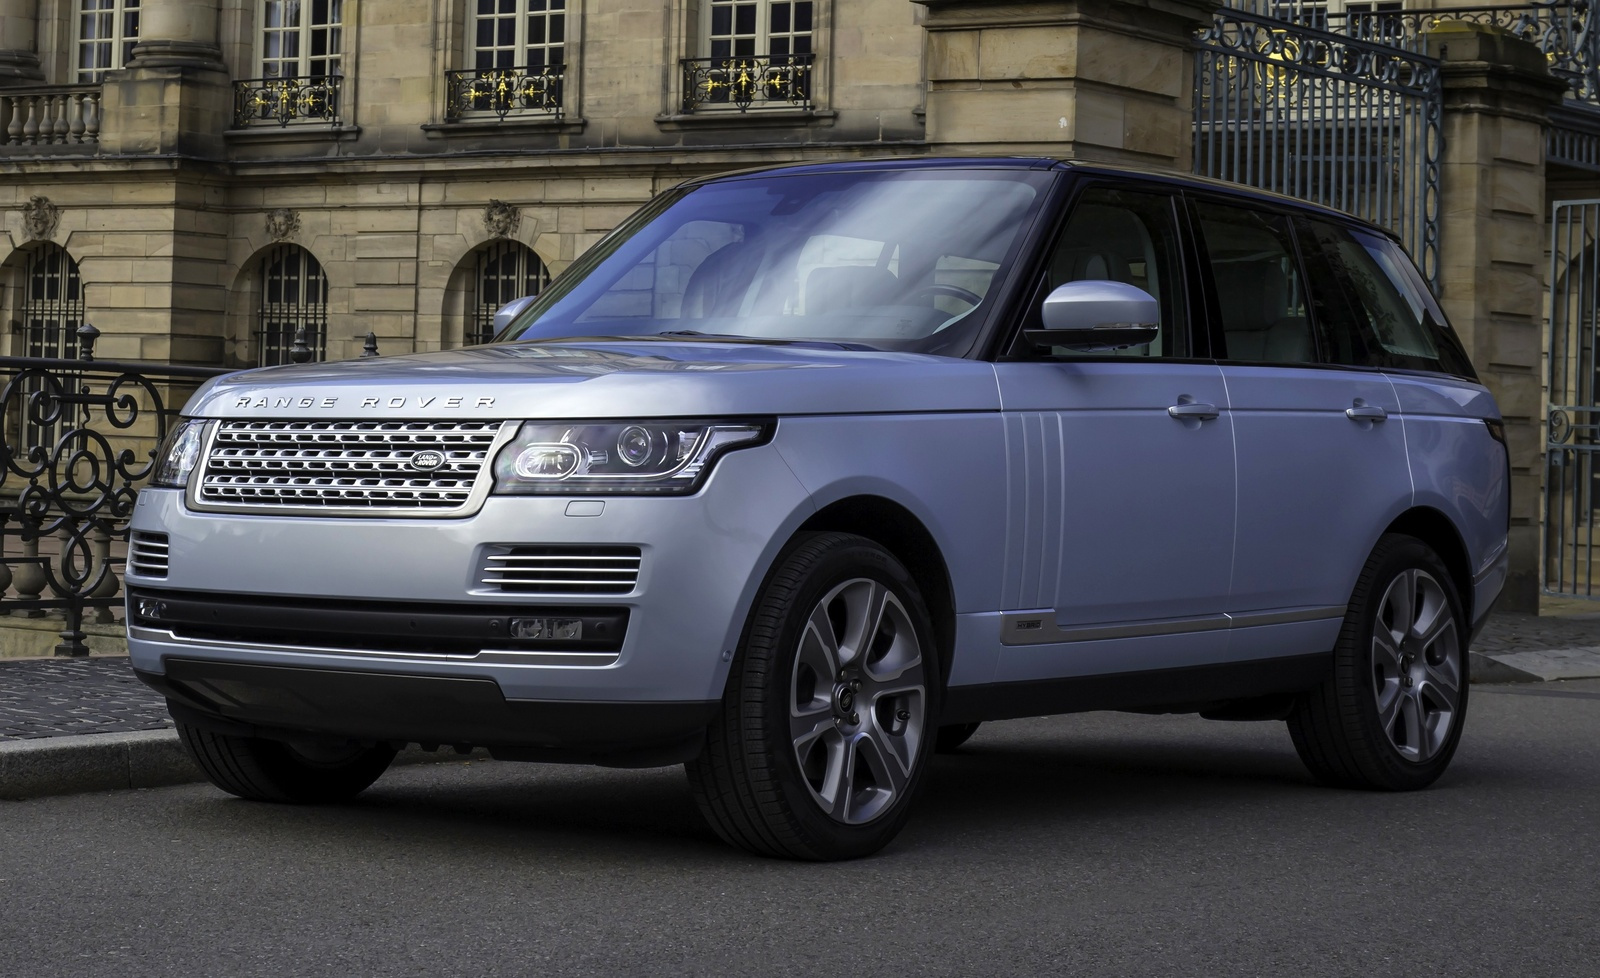 2014 land rover range rover overview cargurus. Black Bedroom Furniture Sets. Home Design Ideas